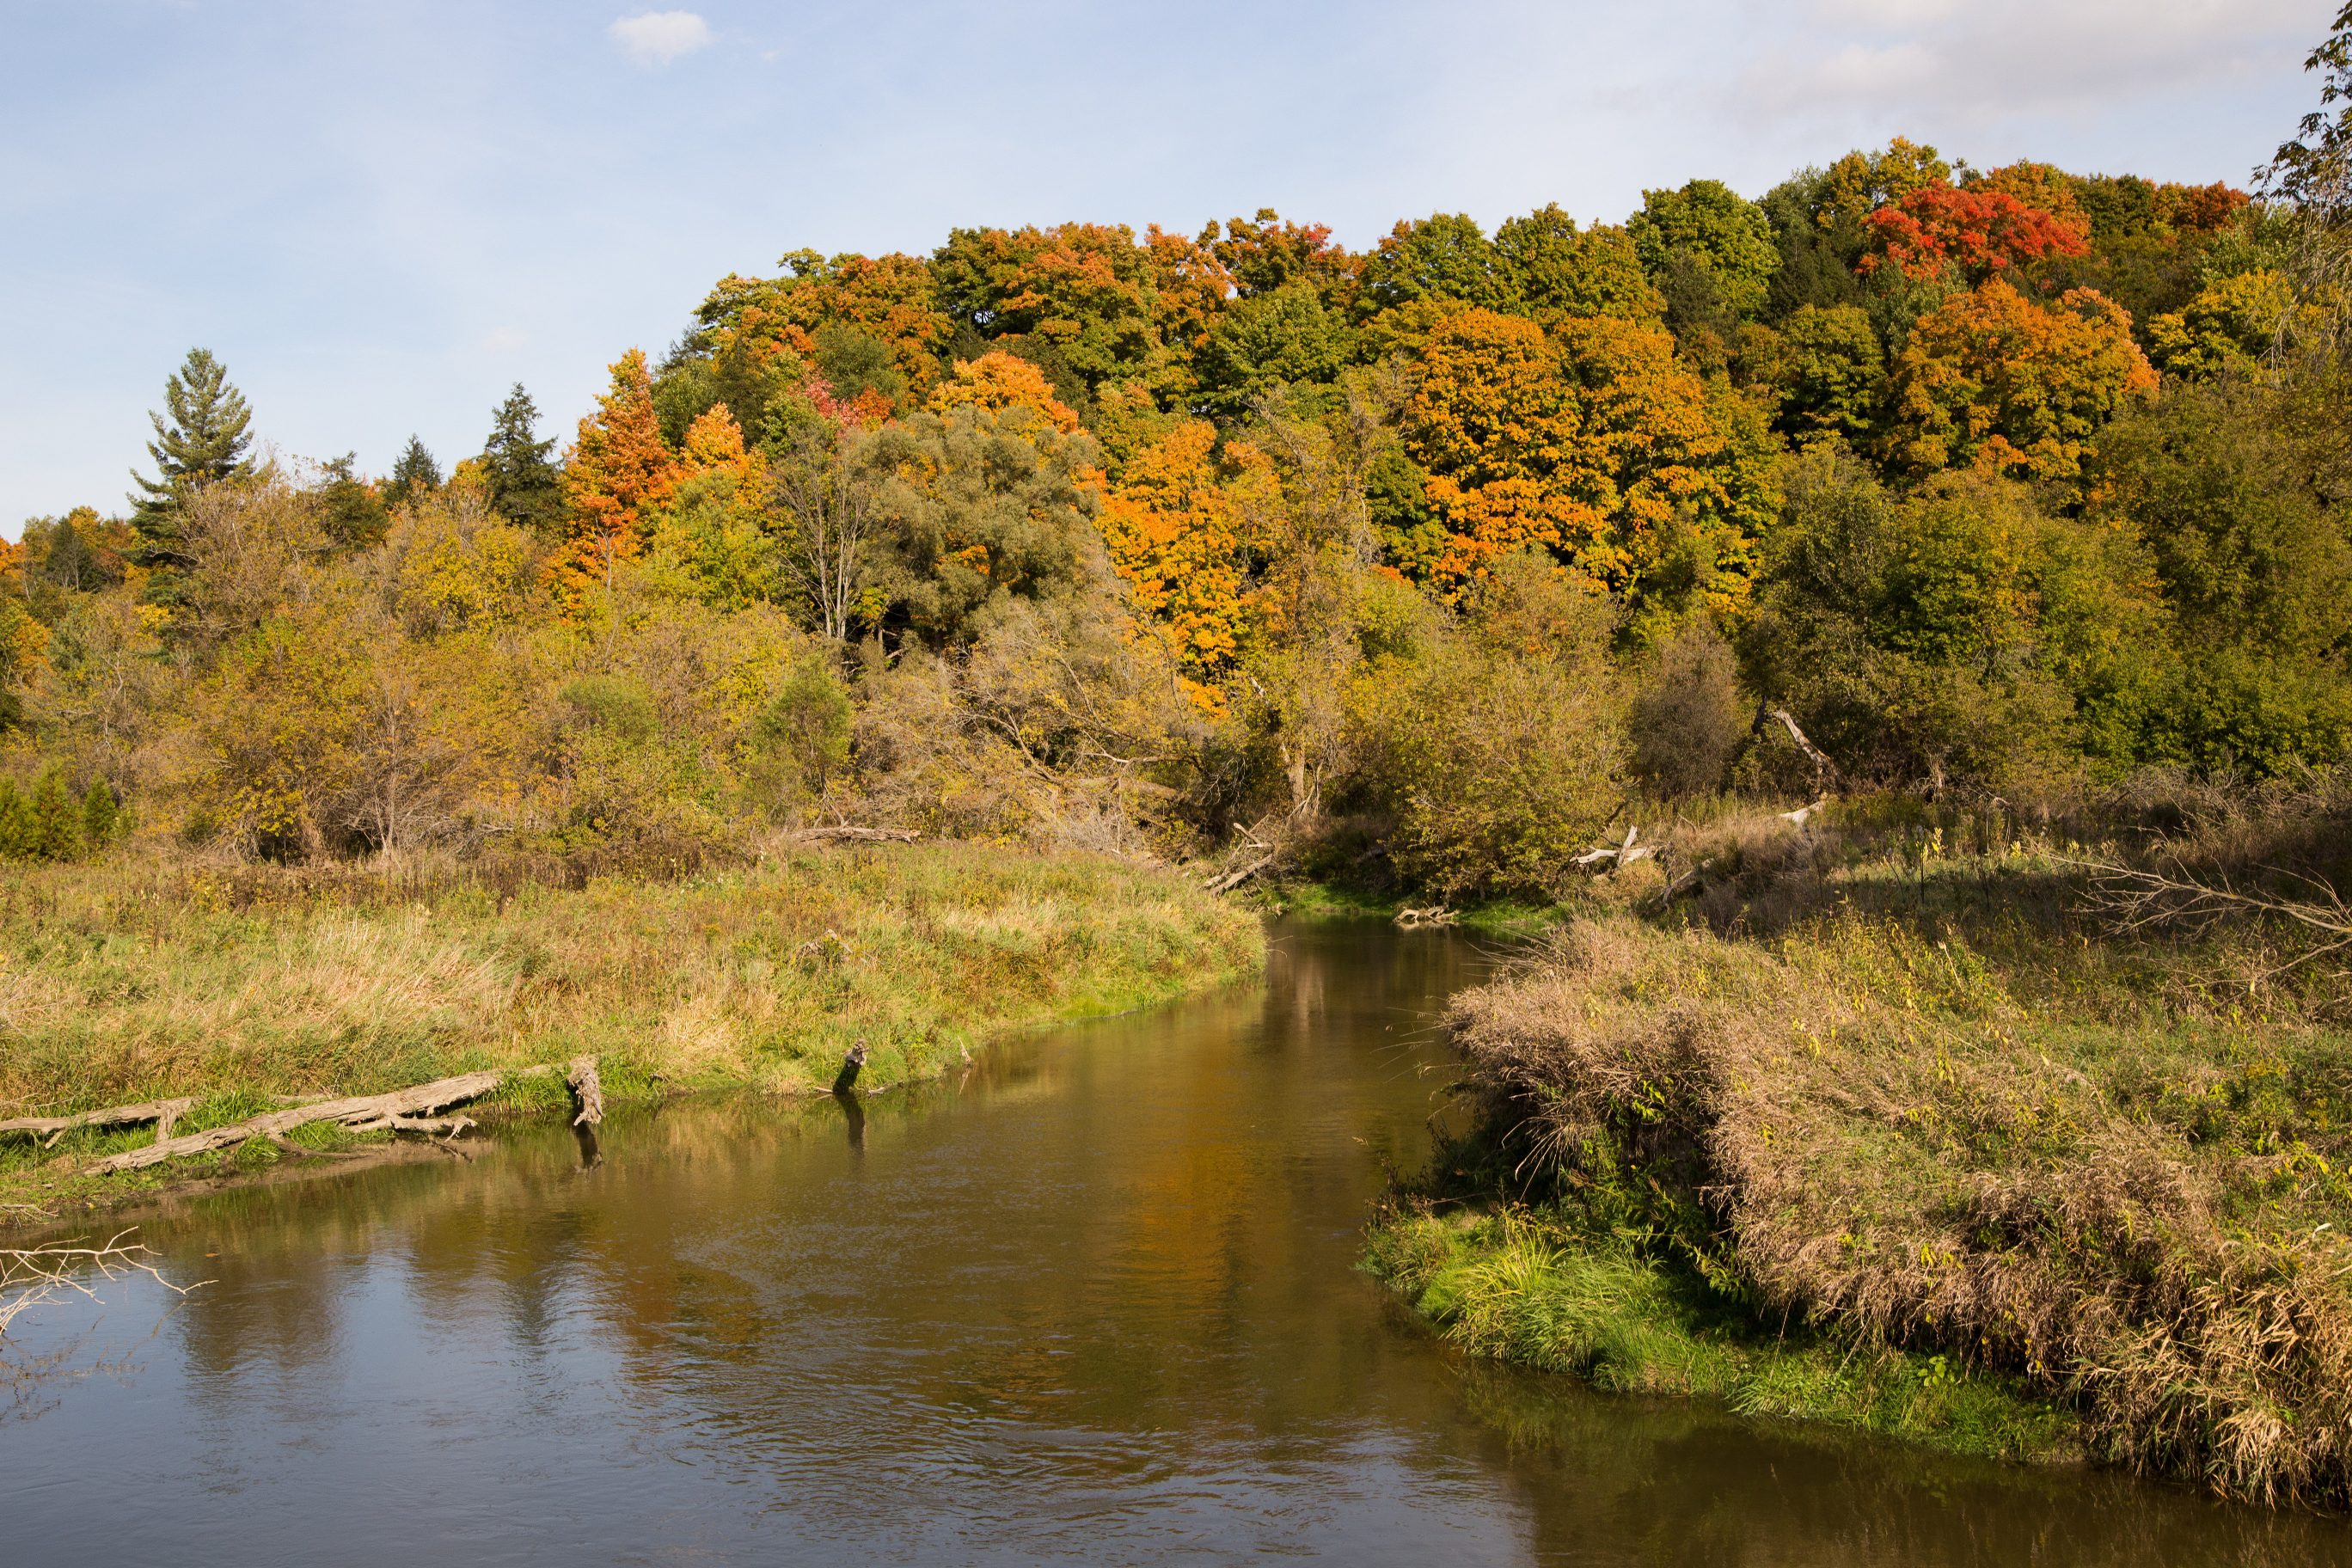 Highway 413 would degrade the Humber River